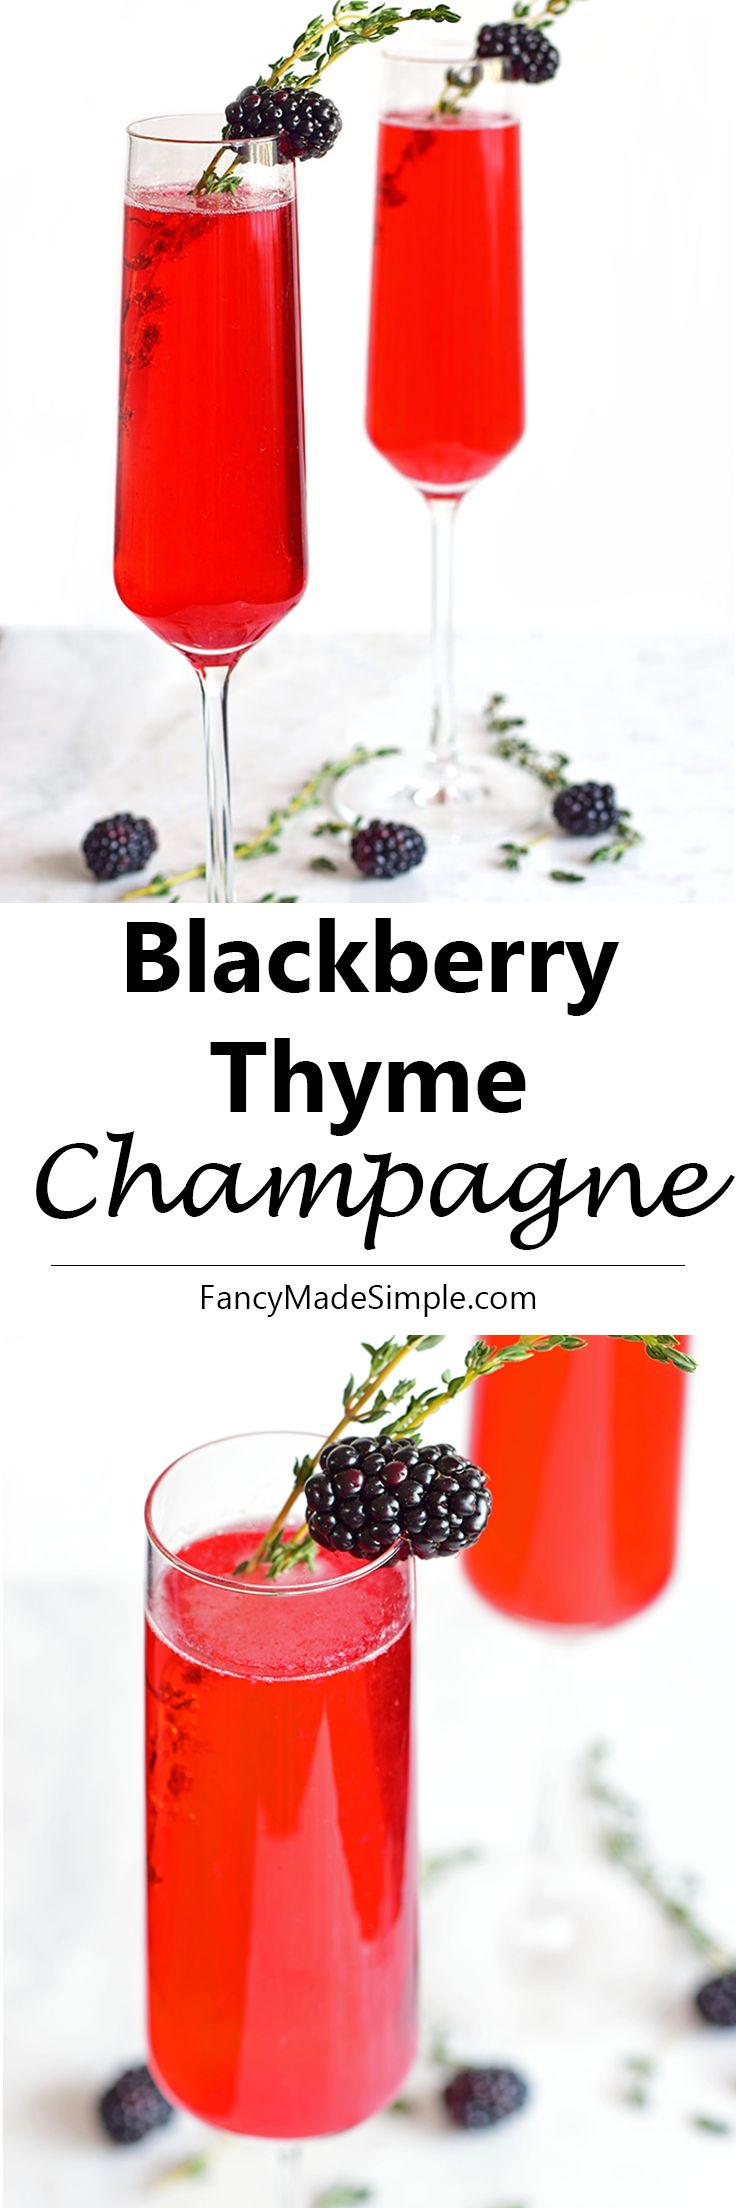 Blackberry Thyme Champagne drink. Perfect refreshing spring or summer cocktail.  Sweet with sparkling champagne makes for the perfect red cocktail.